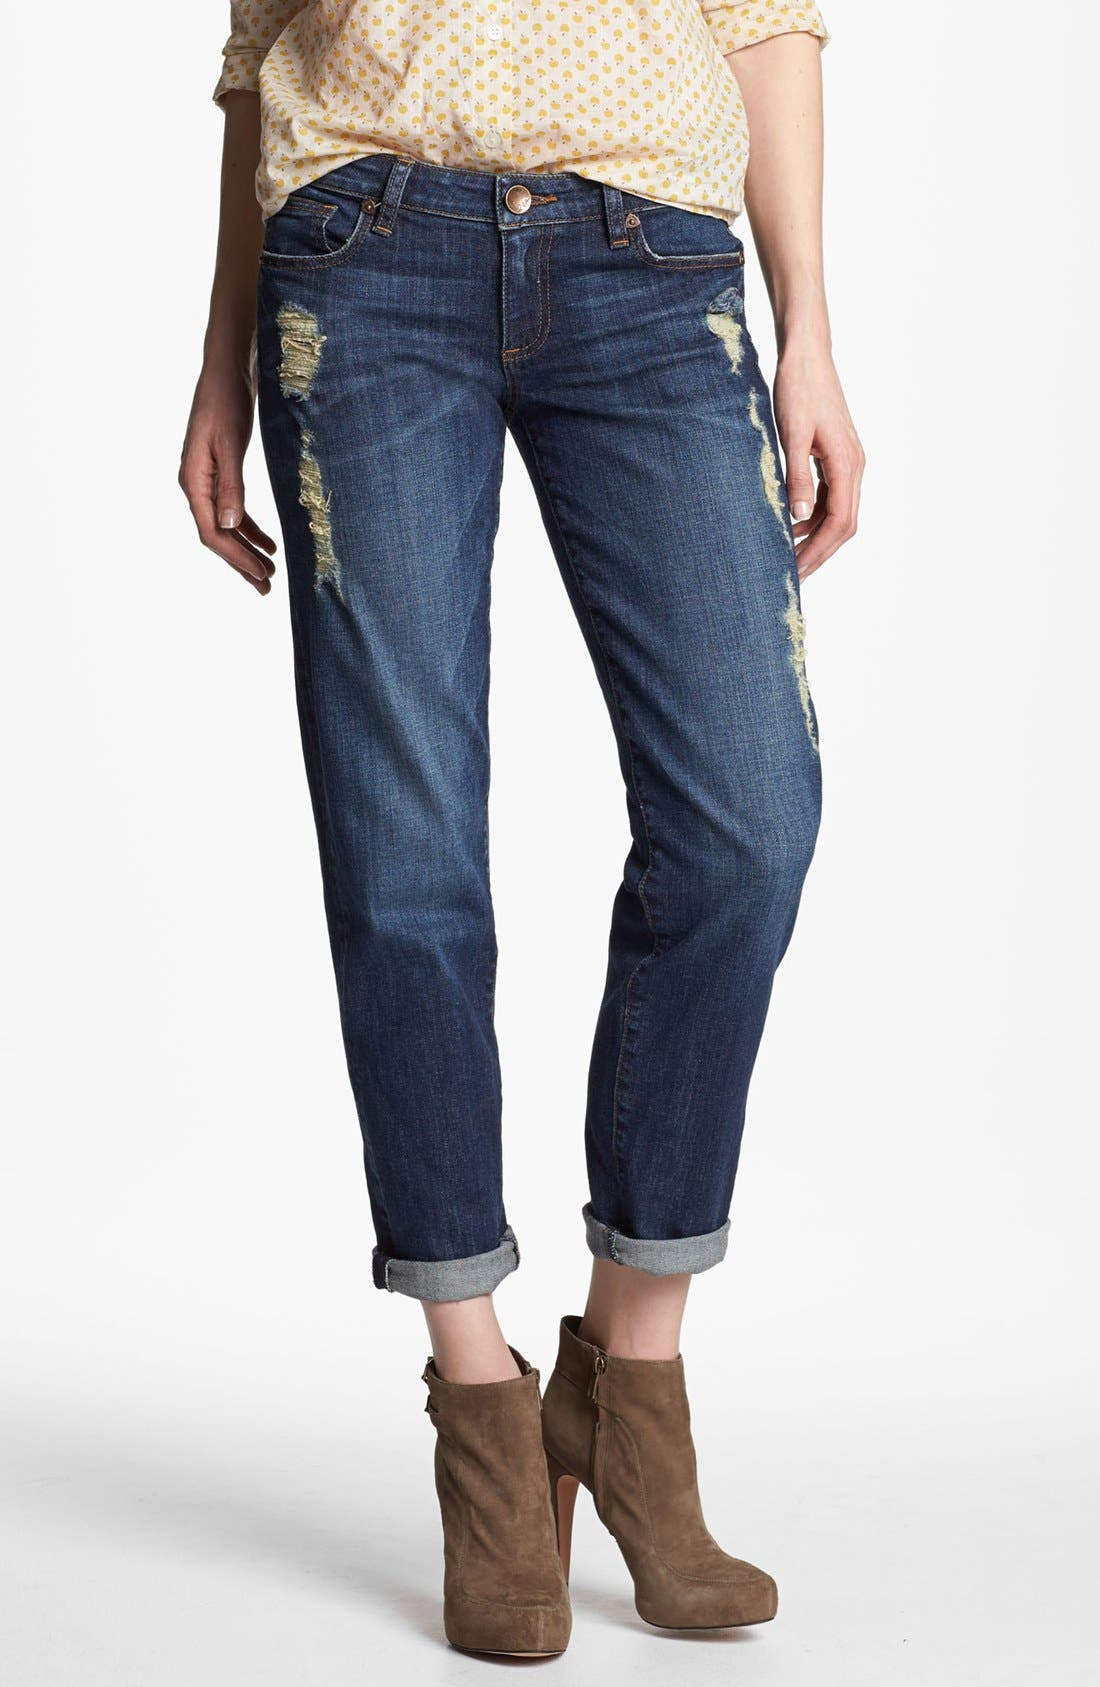 Alternate Image 1 Selected - KUT from the Kloth 'Catherine' Slim Boyfriend Jeans (Casual Dark Stone)